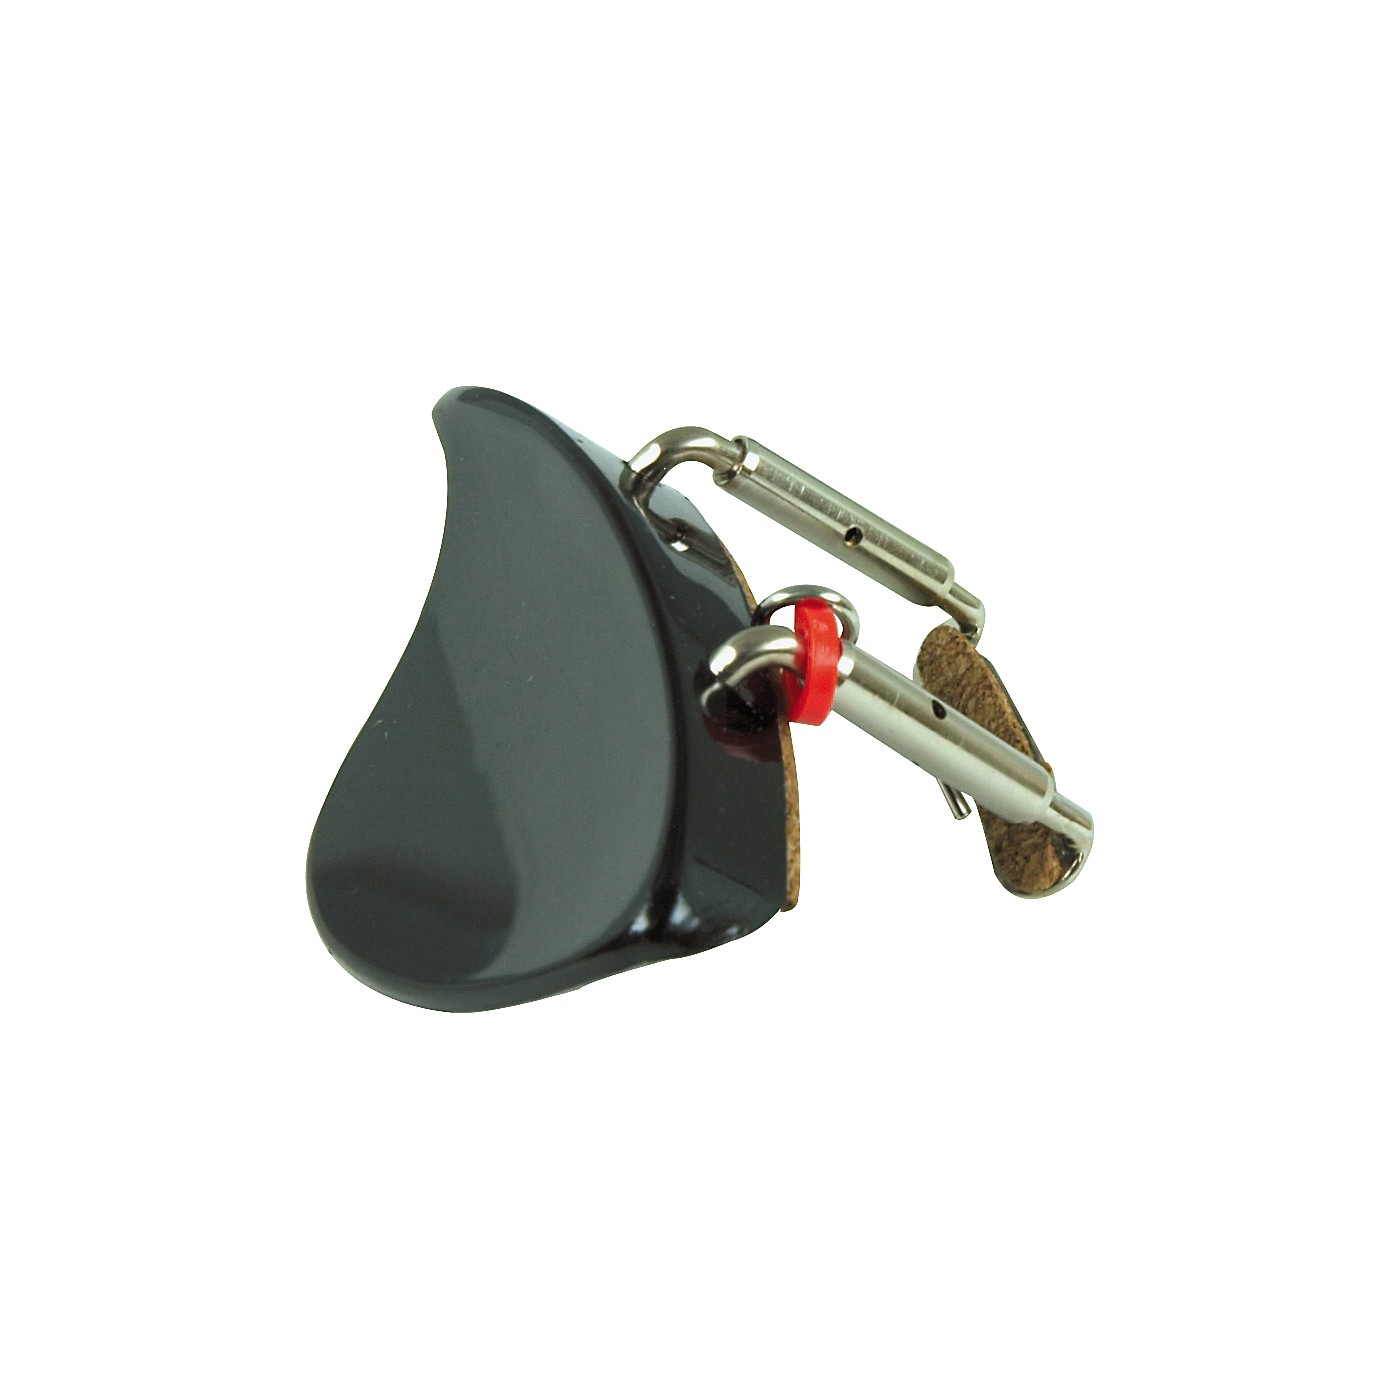 Glaesel 1/4 and 1/2 Violin Plastic Chin Rest thumbnail